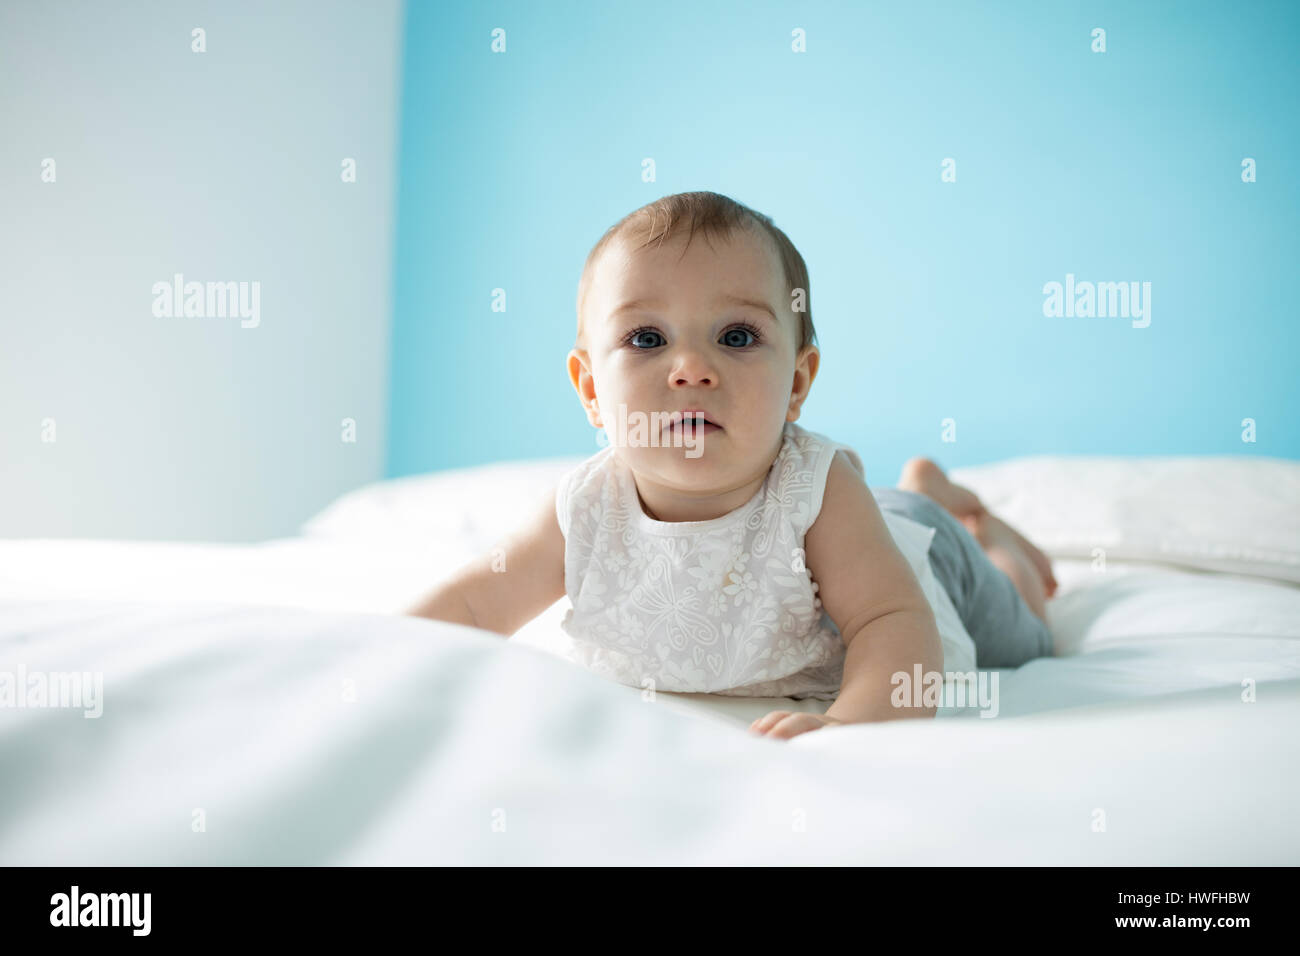 Portrait of cute baby girl on lit dans la chambre Banque D'Images